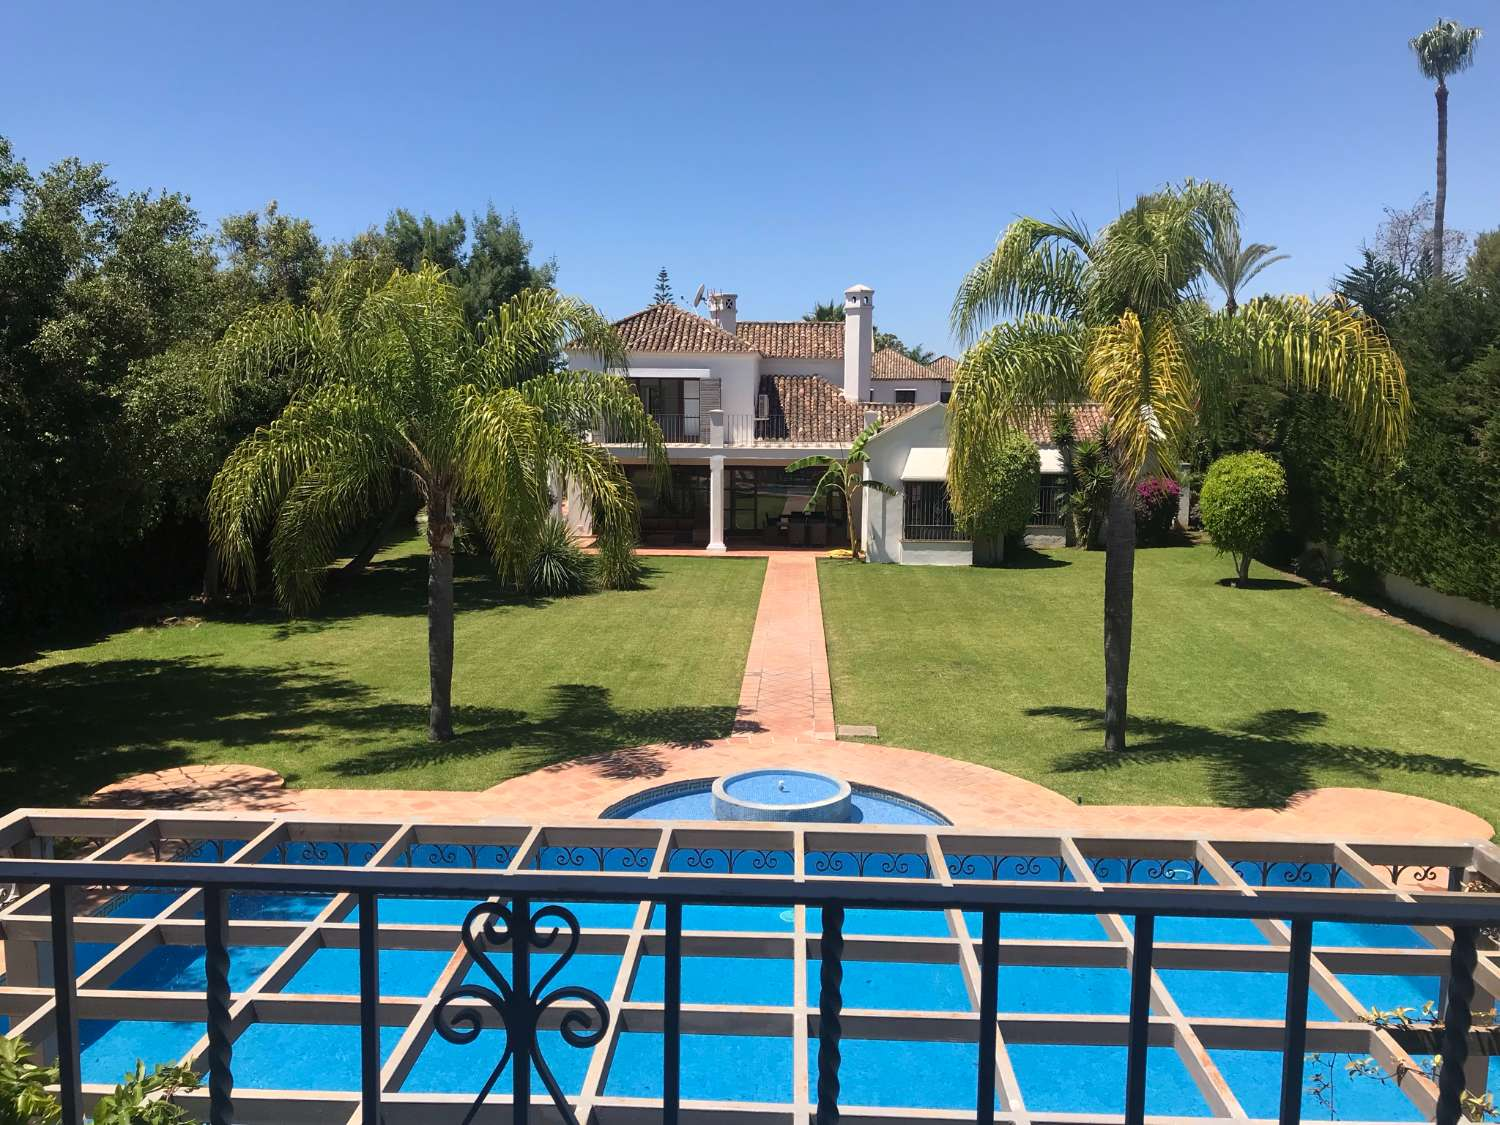 Exceptional Modern Andalusian Cortijo style Home, with a private tennis court! Huge Plot of 3,400 m2.